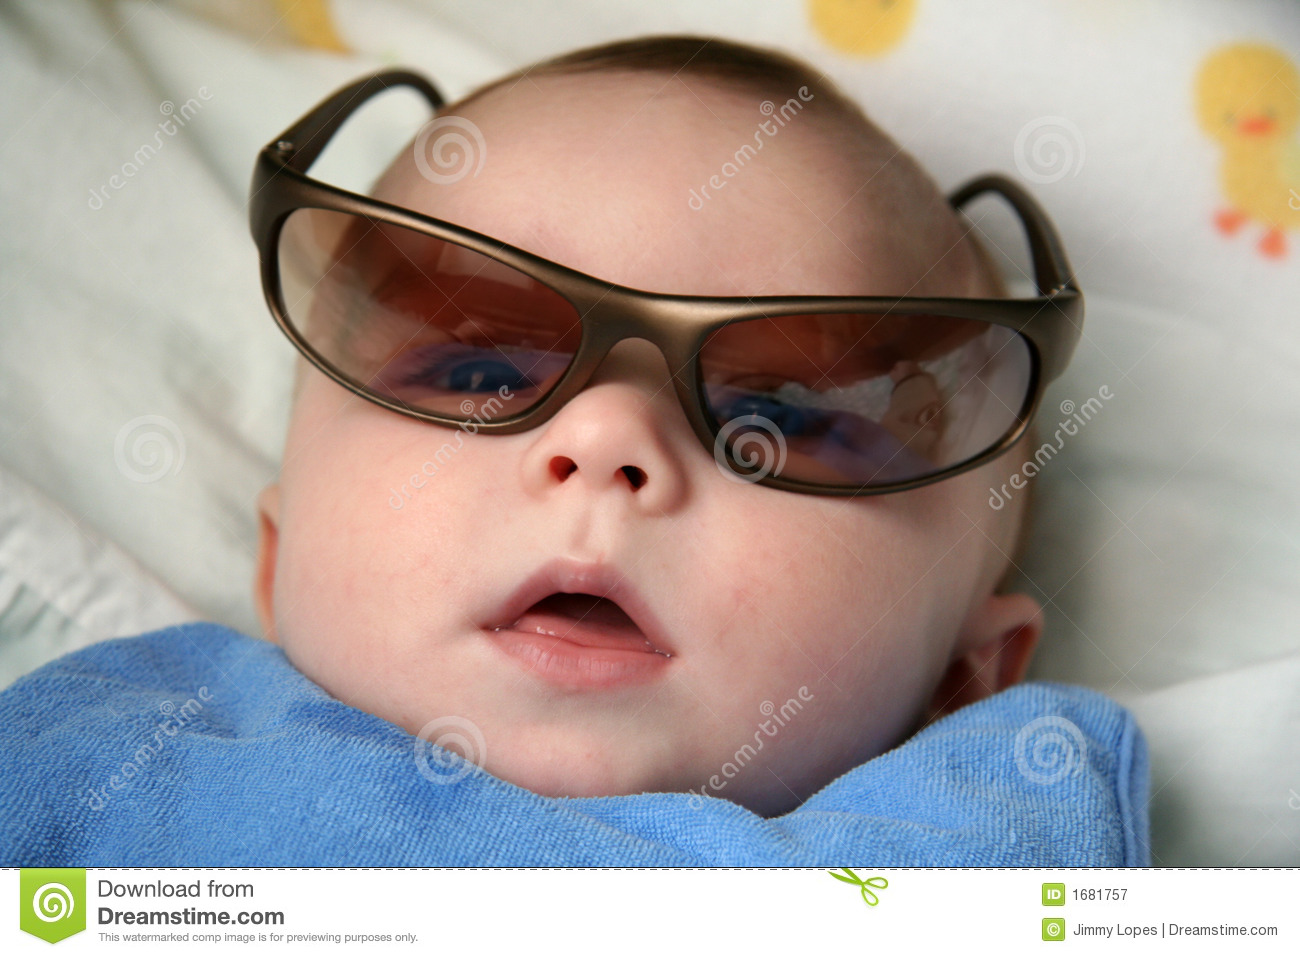 Shop Baby Boy Sunglasses. Great selections and deals on baby sunglasses.